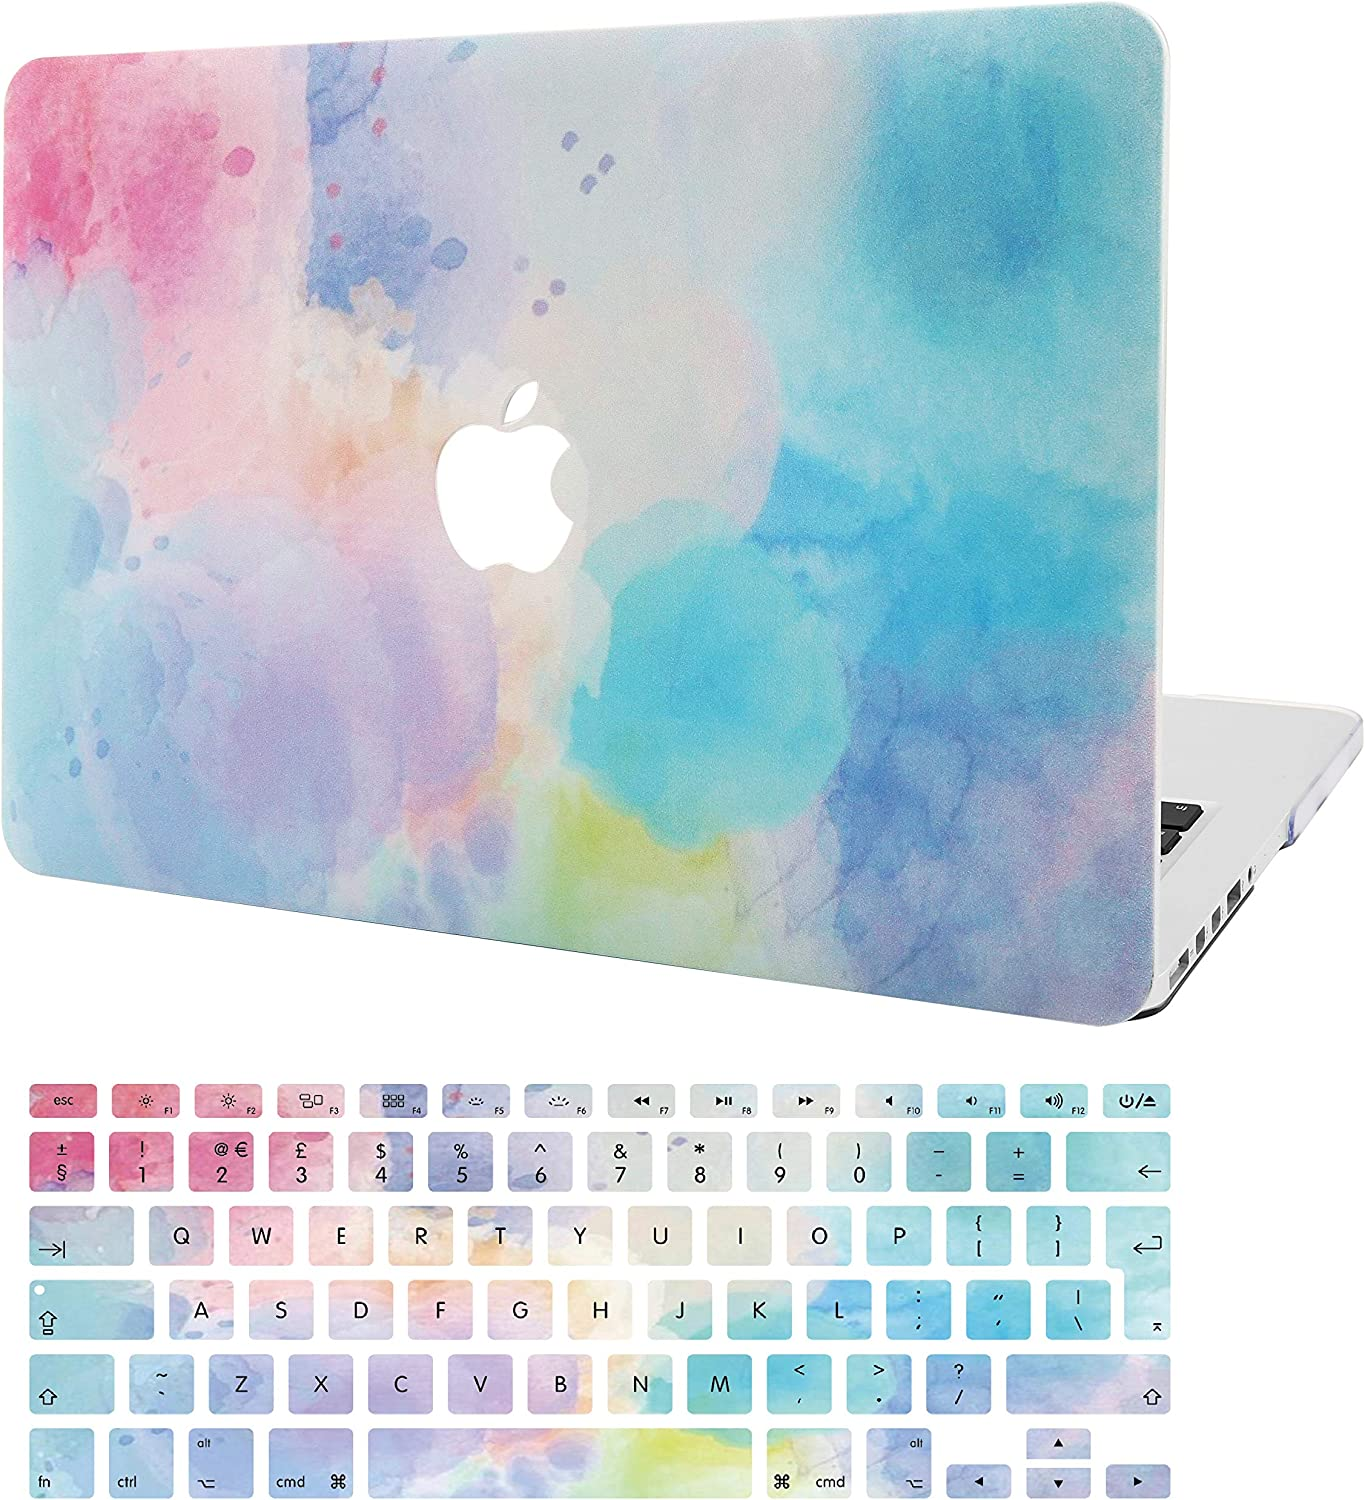 "KECC Laptop Case for MacBook 12"" w/Keyboard Cover Plastic Hard Shell Case A1534 2 in 1 Bundle (Rainbow Mist 2)"